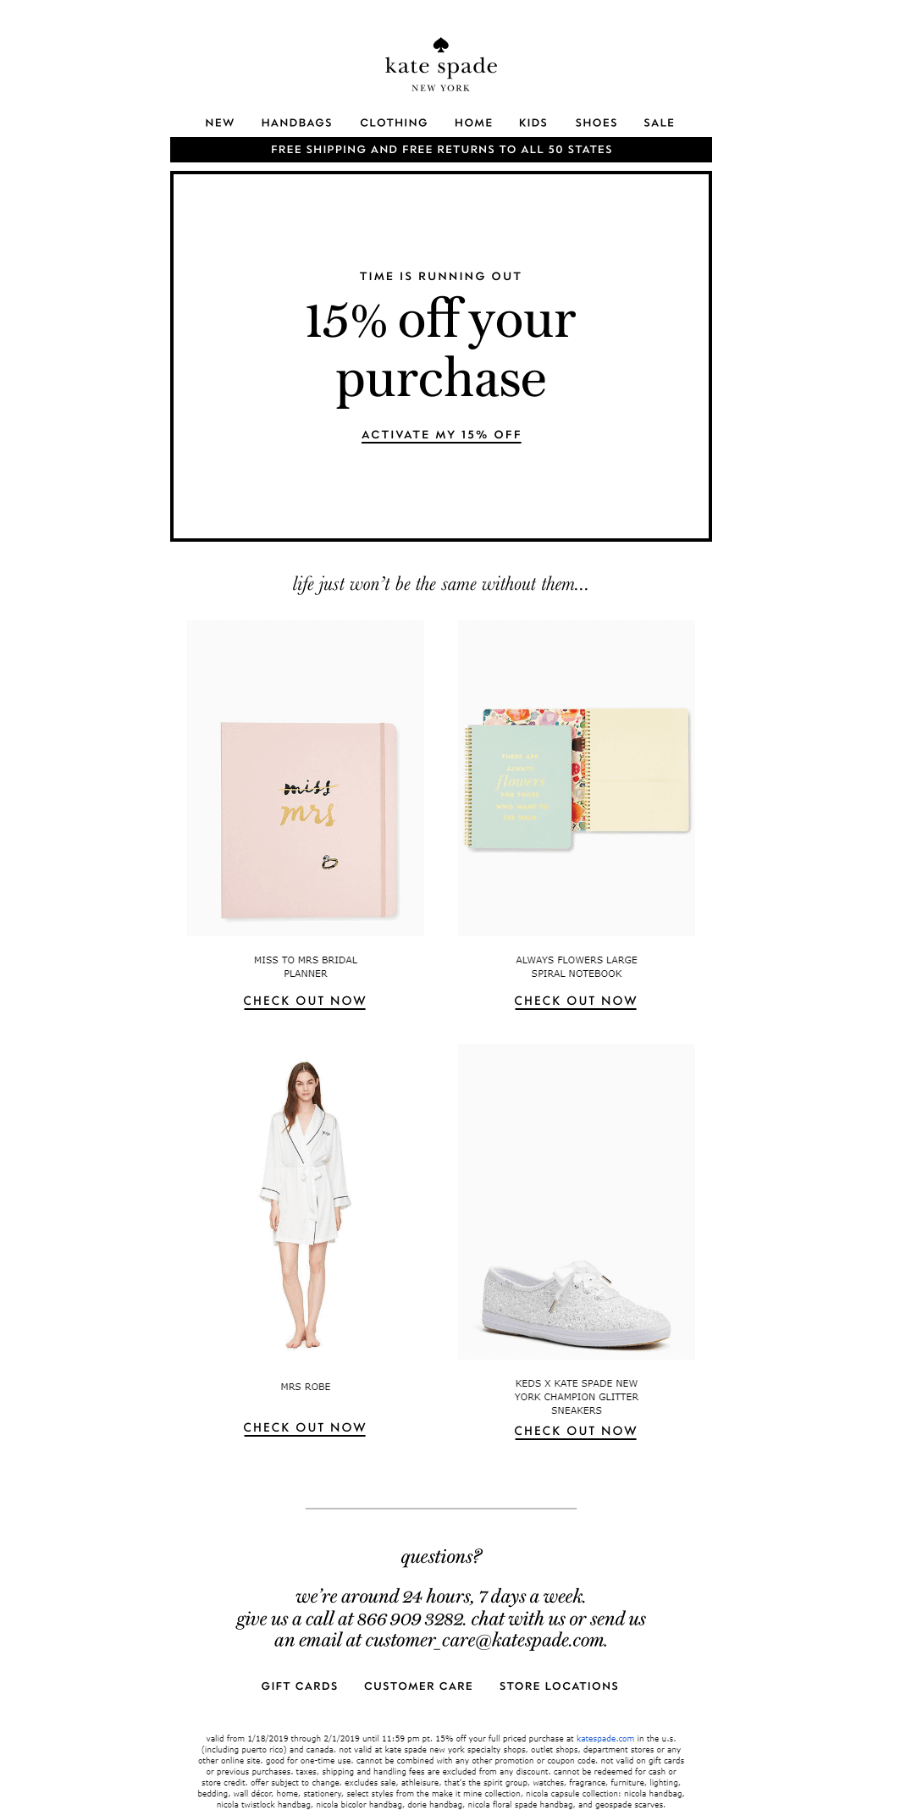 Kate Spade's abandoned cart email